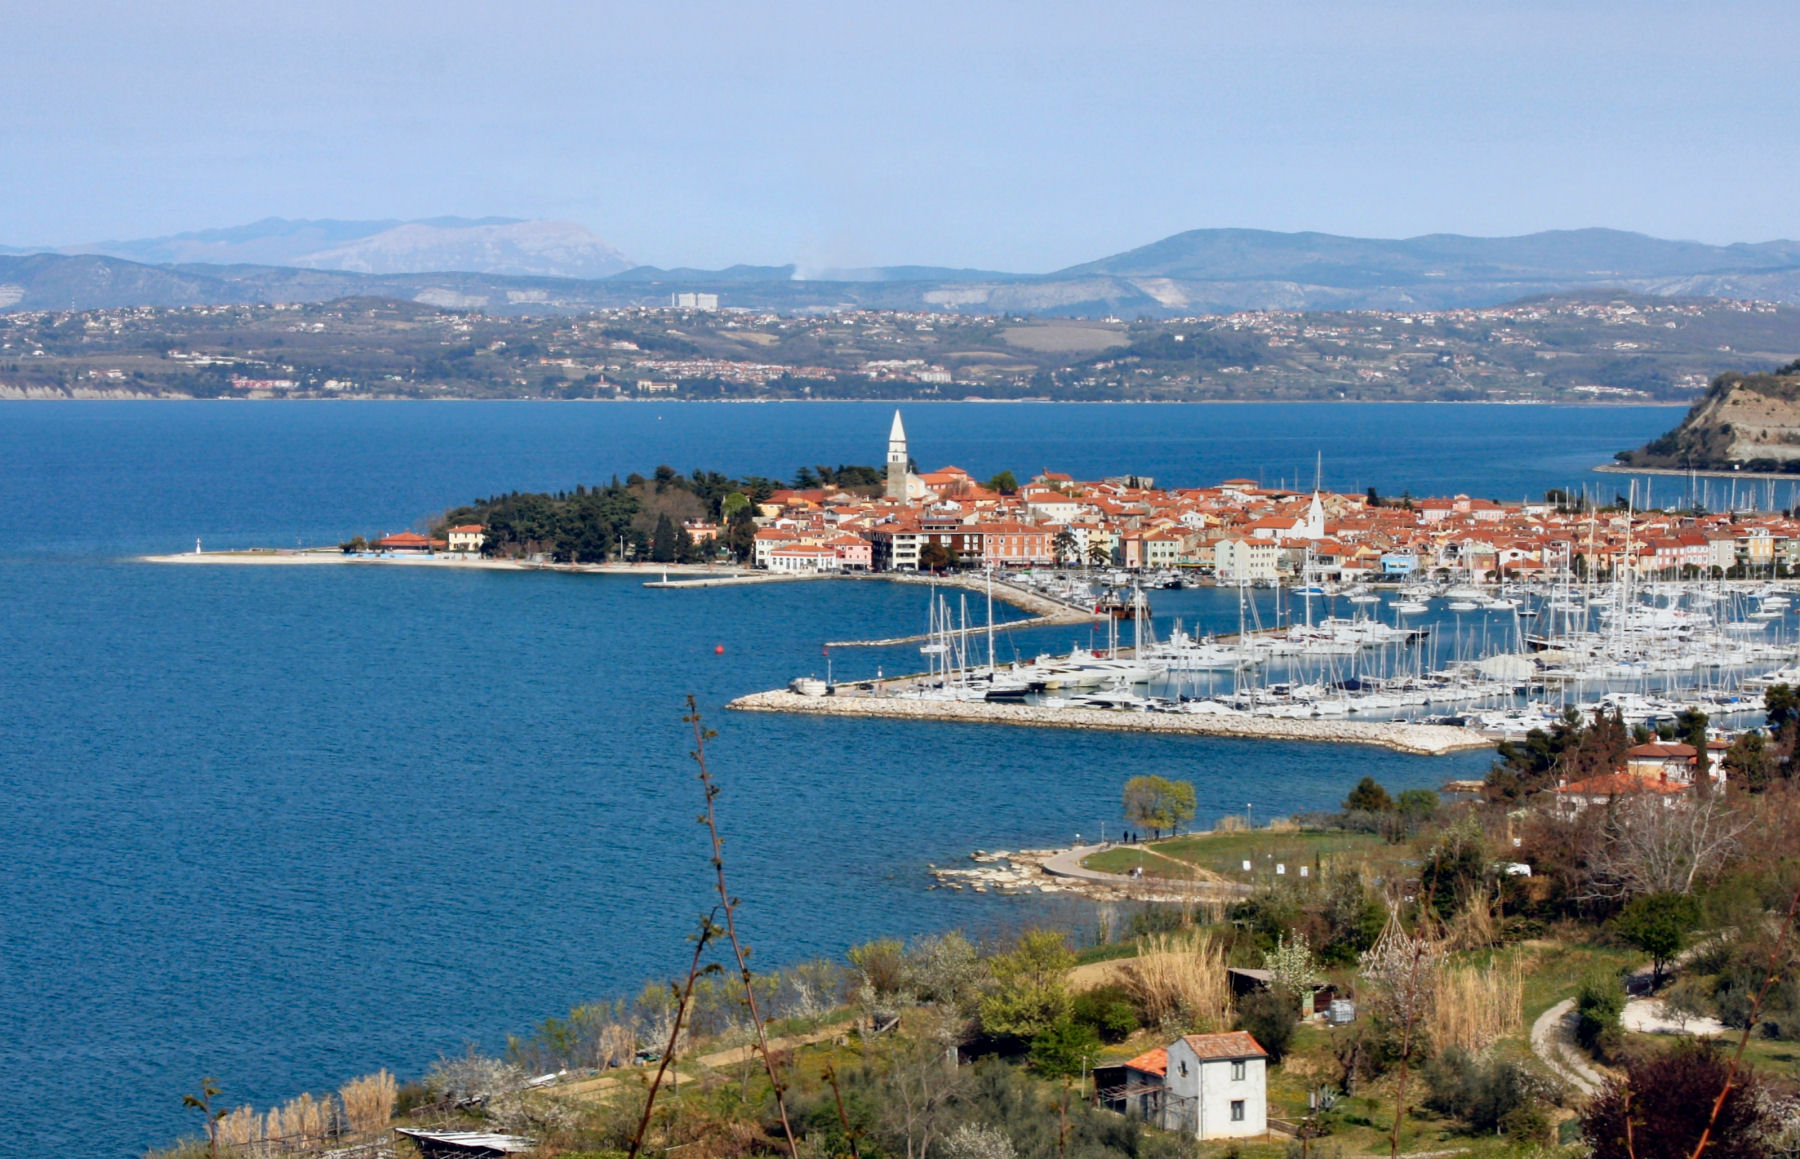 A panoramic shot of the old Mediterranean town of Izola in southwestern Slovenia